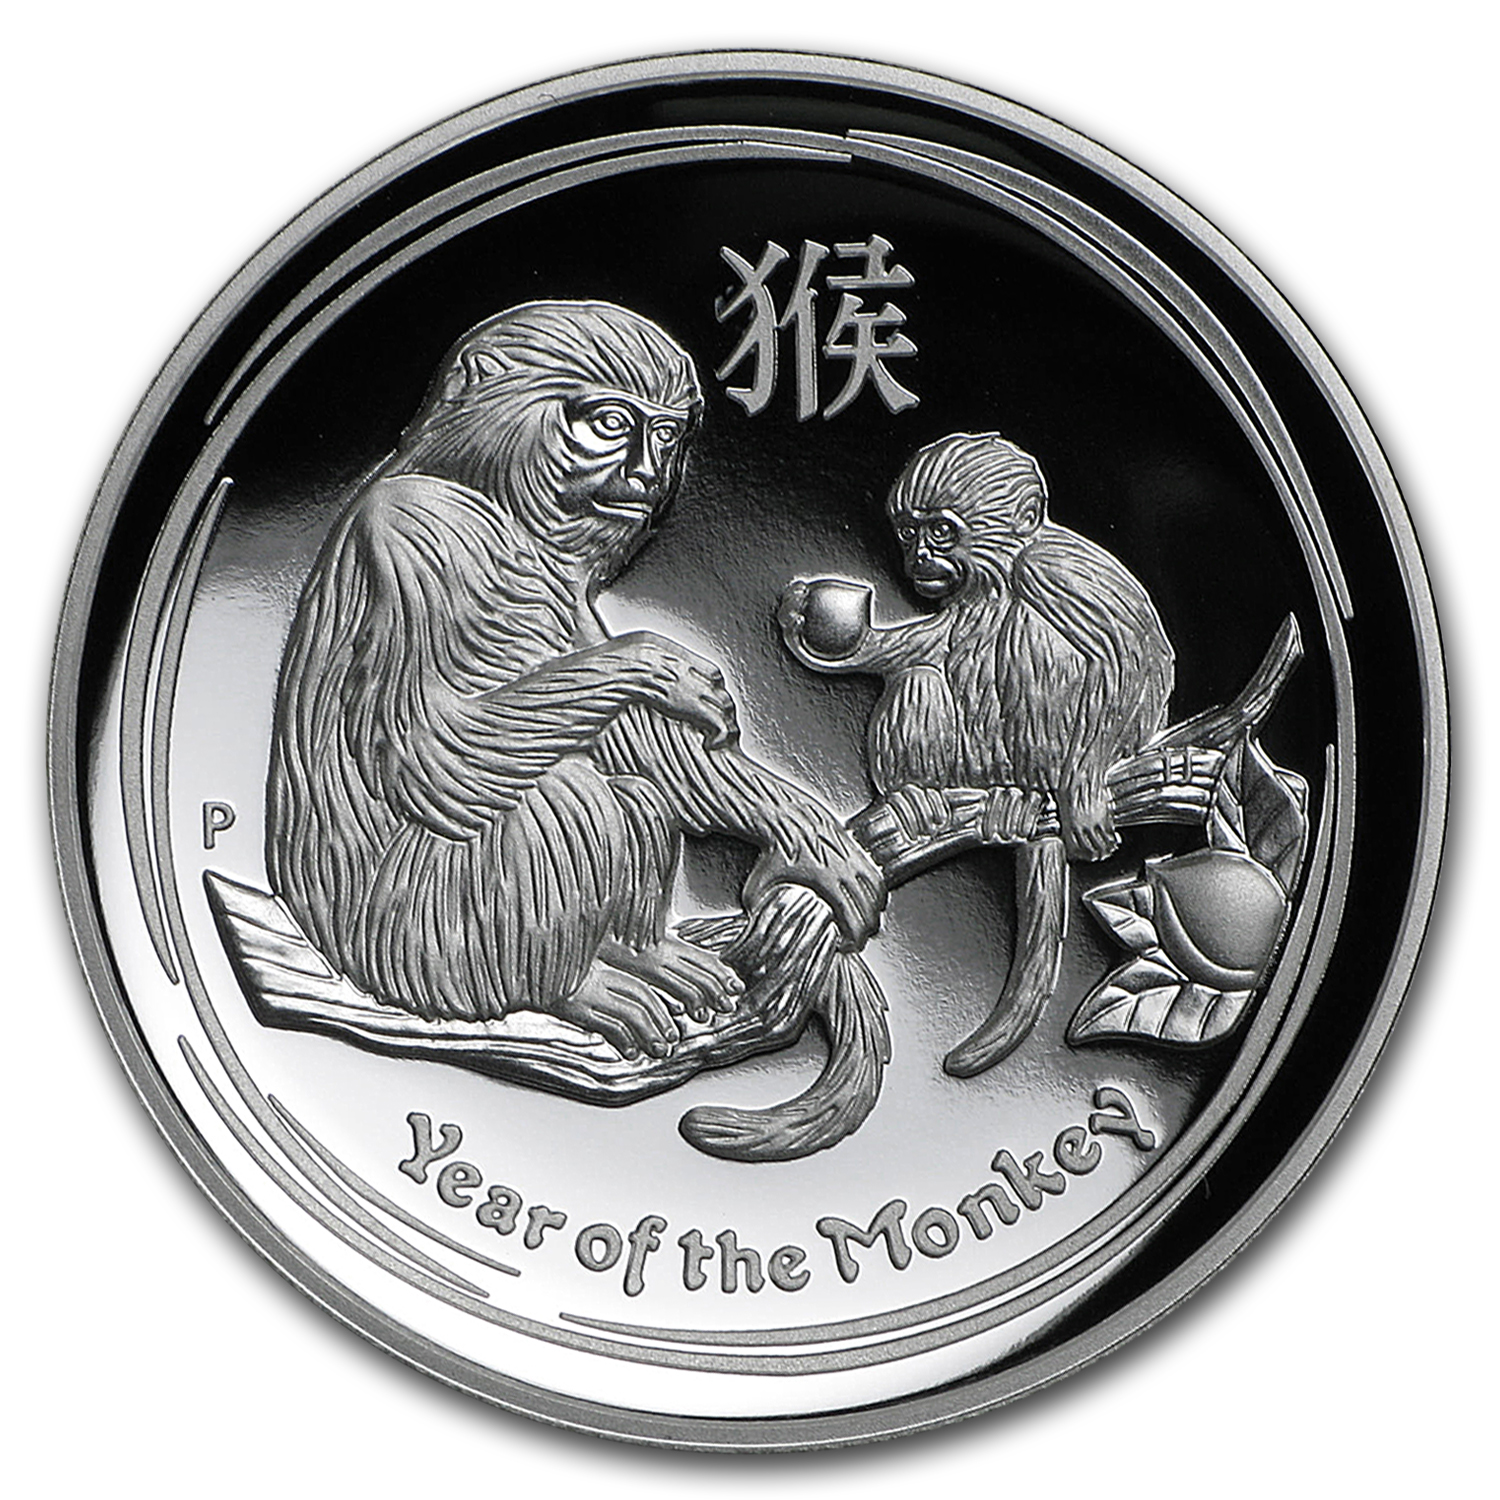 2016 Australia 1 Oz Silver Lunar Monkey Proof High Relief